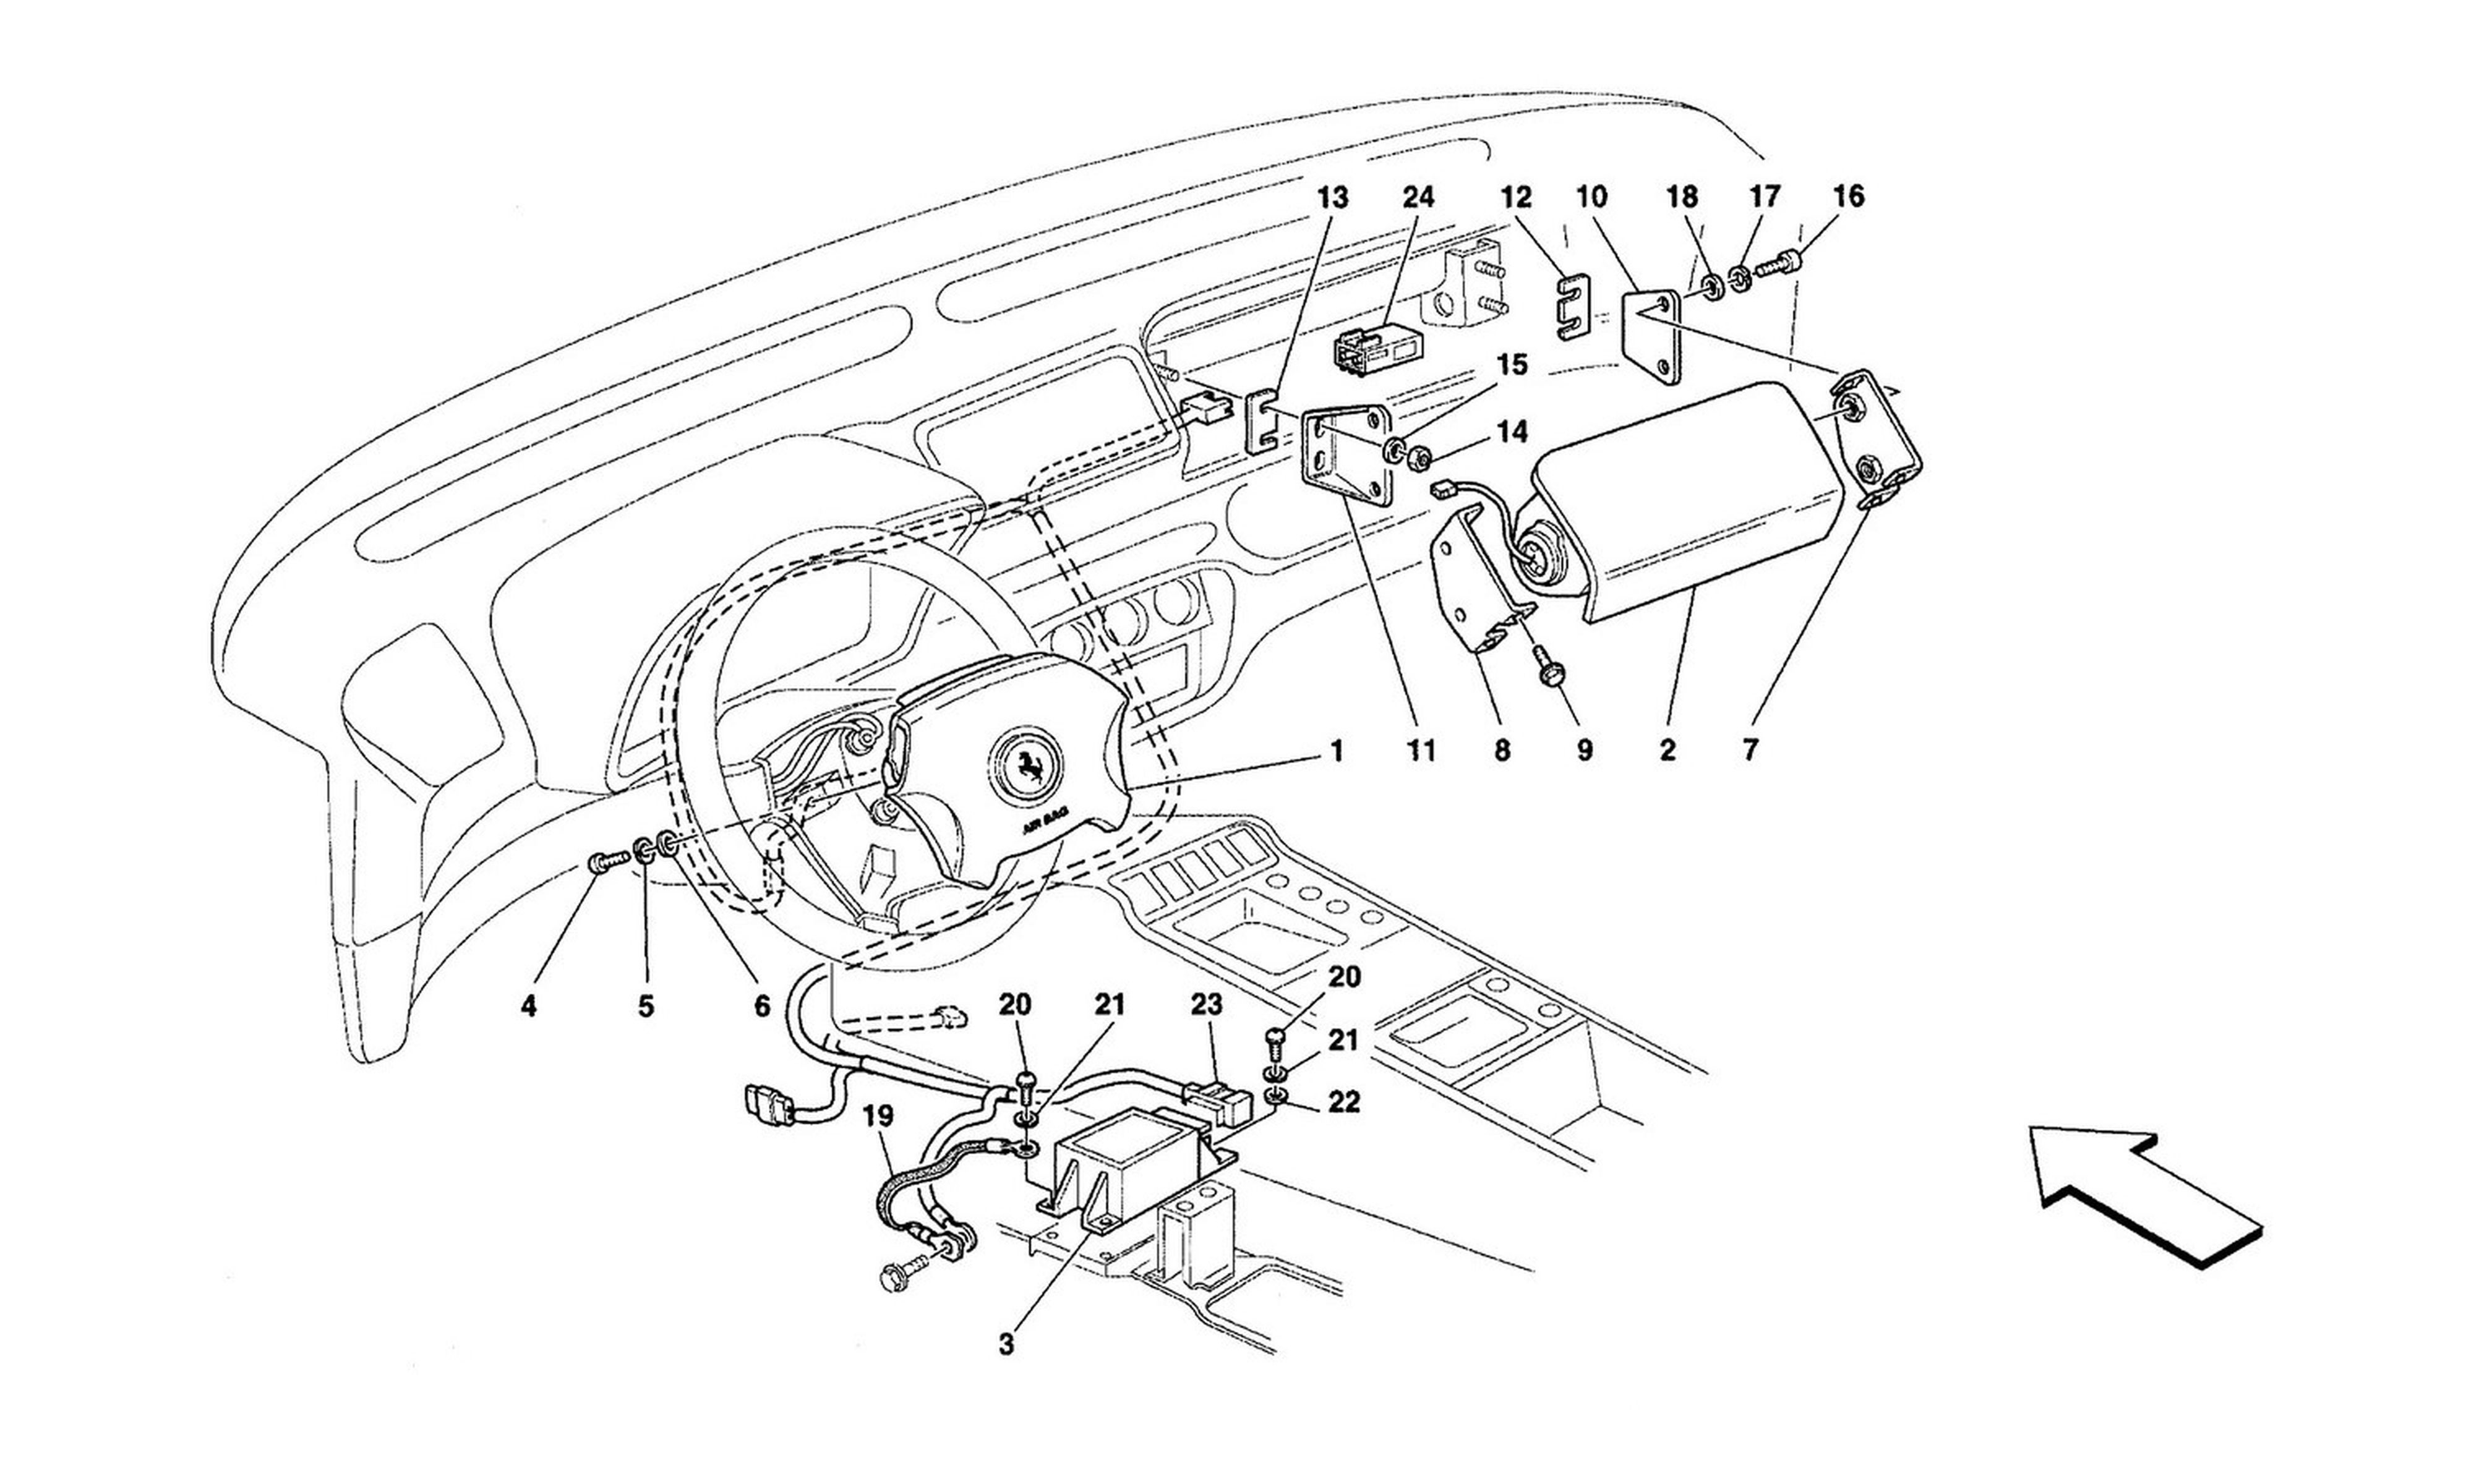 schematic: air-bags